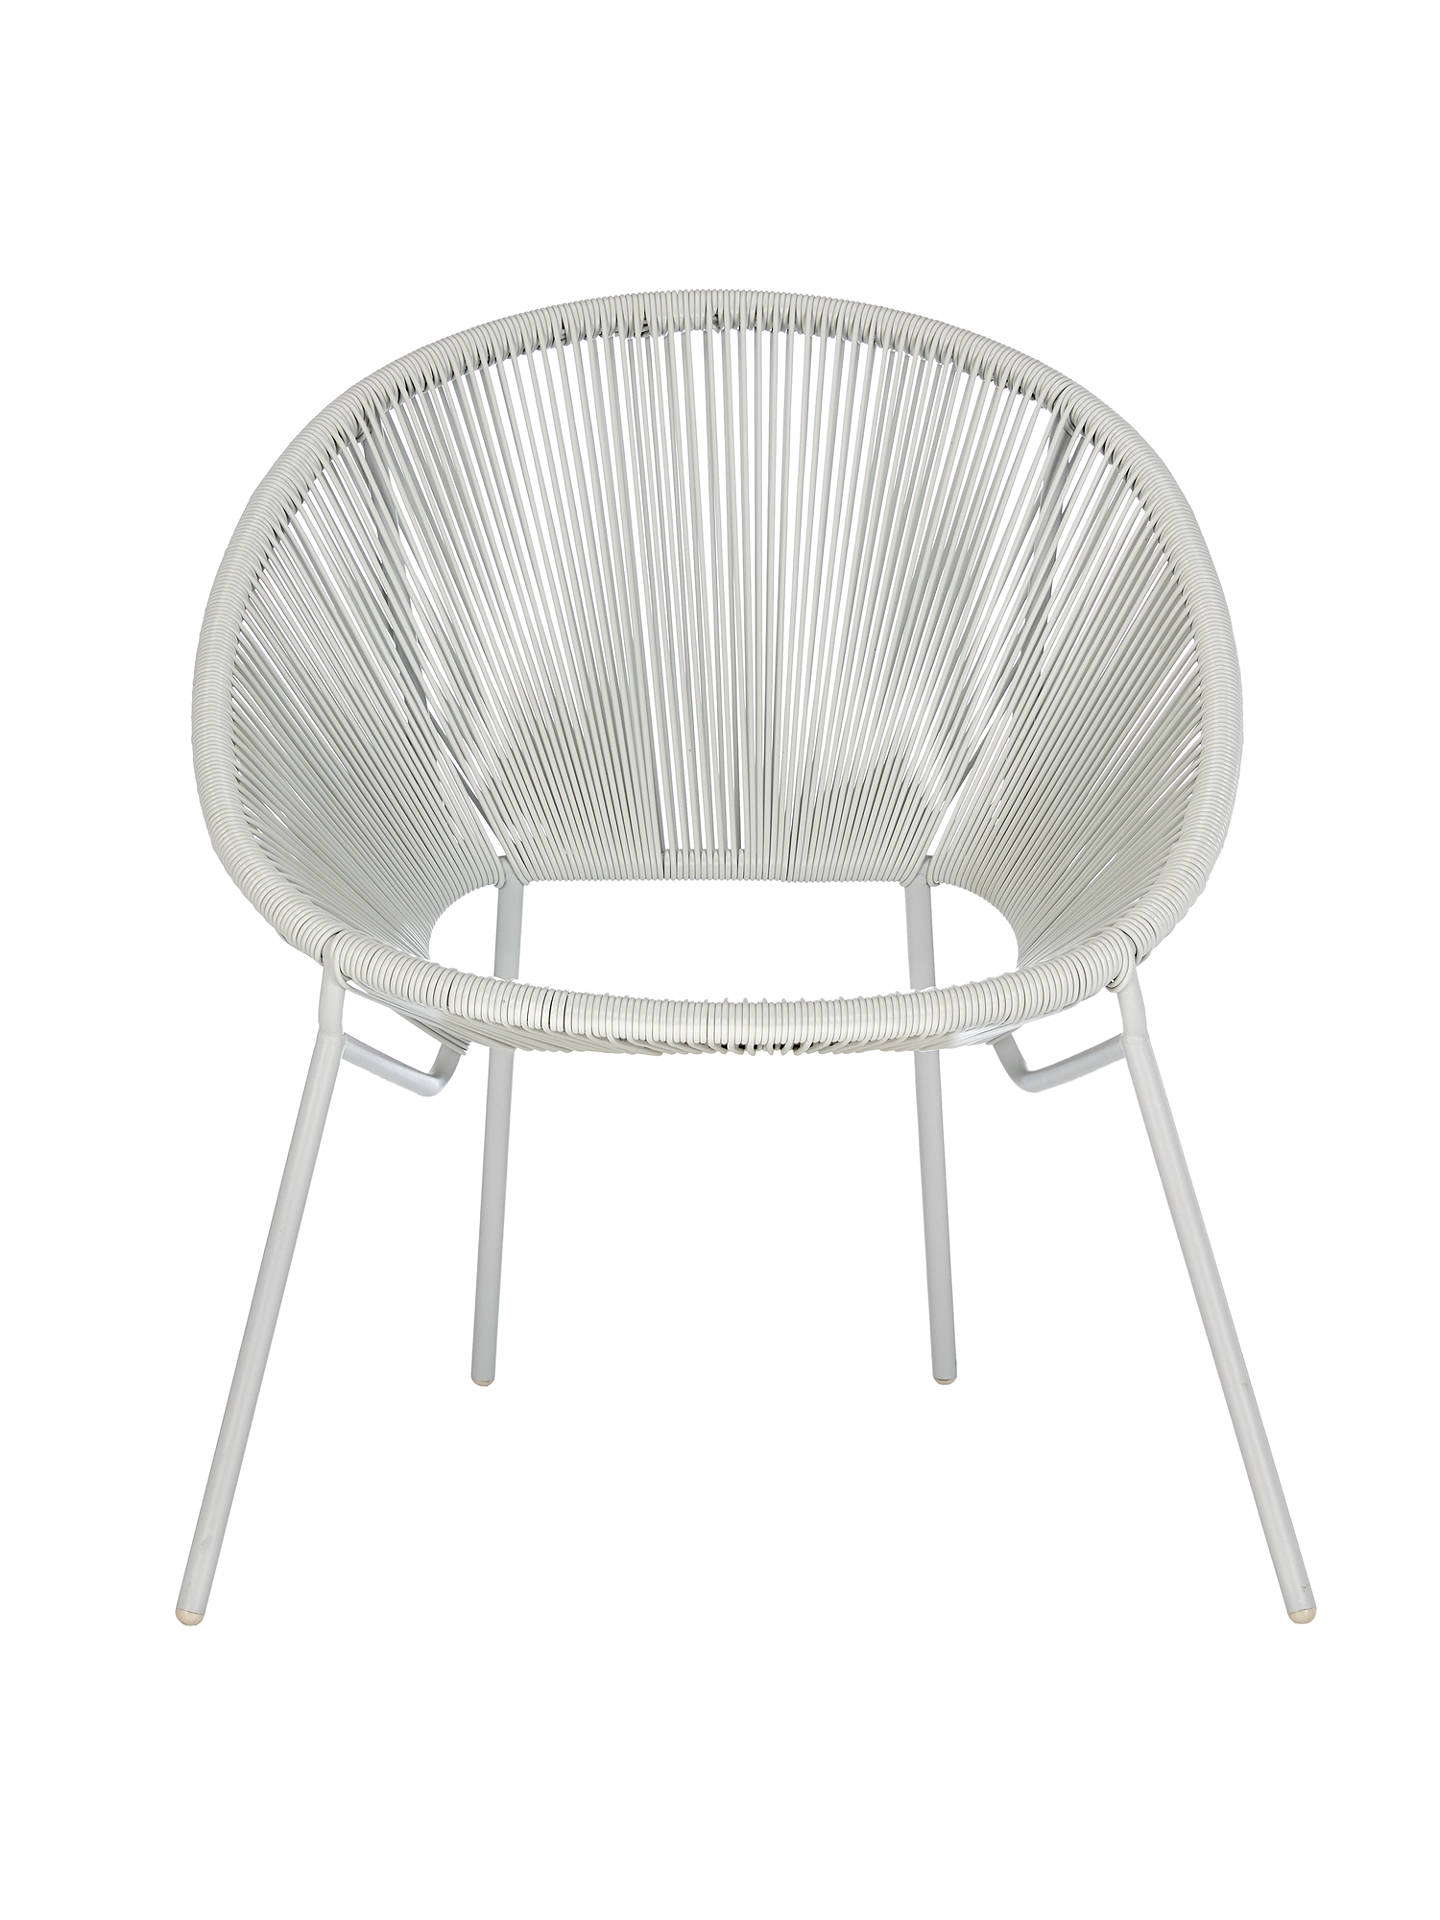 House by John Lewis Salsa Garden Chair, Set of 8 at John Lewis